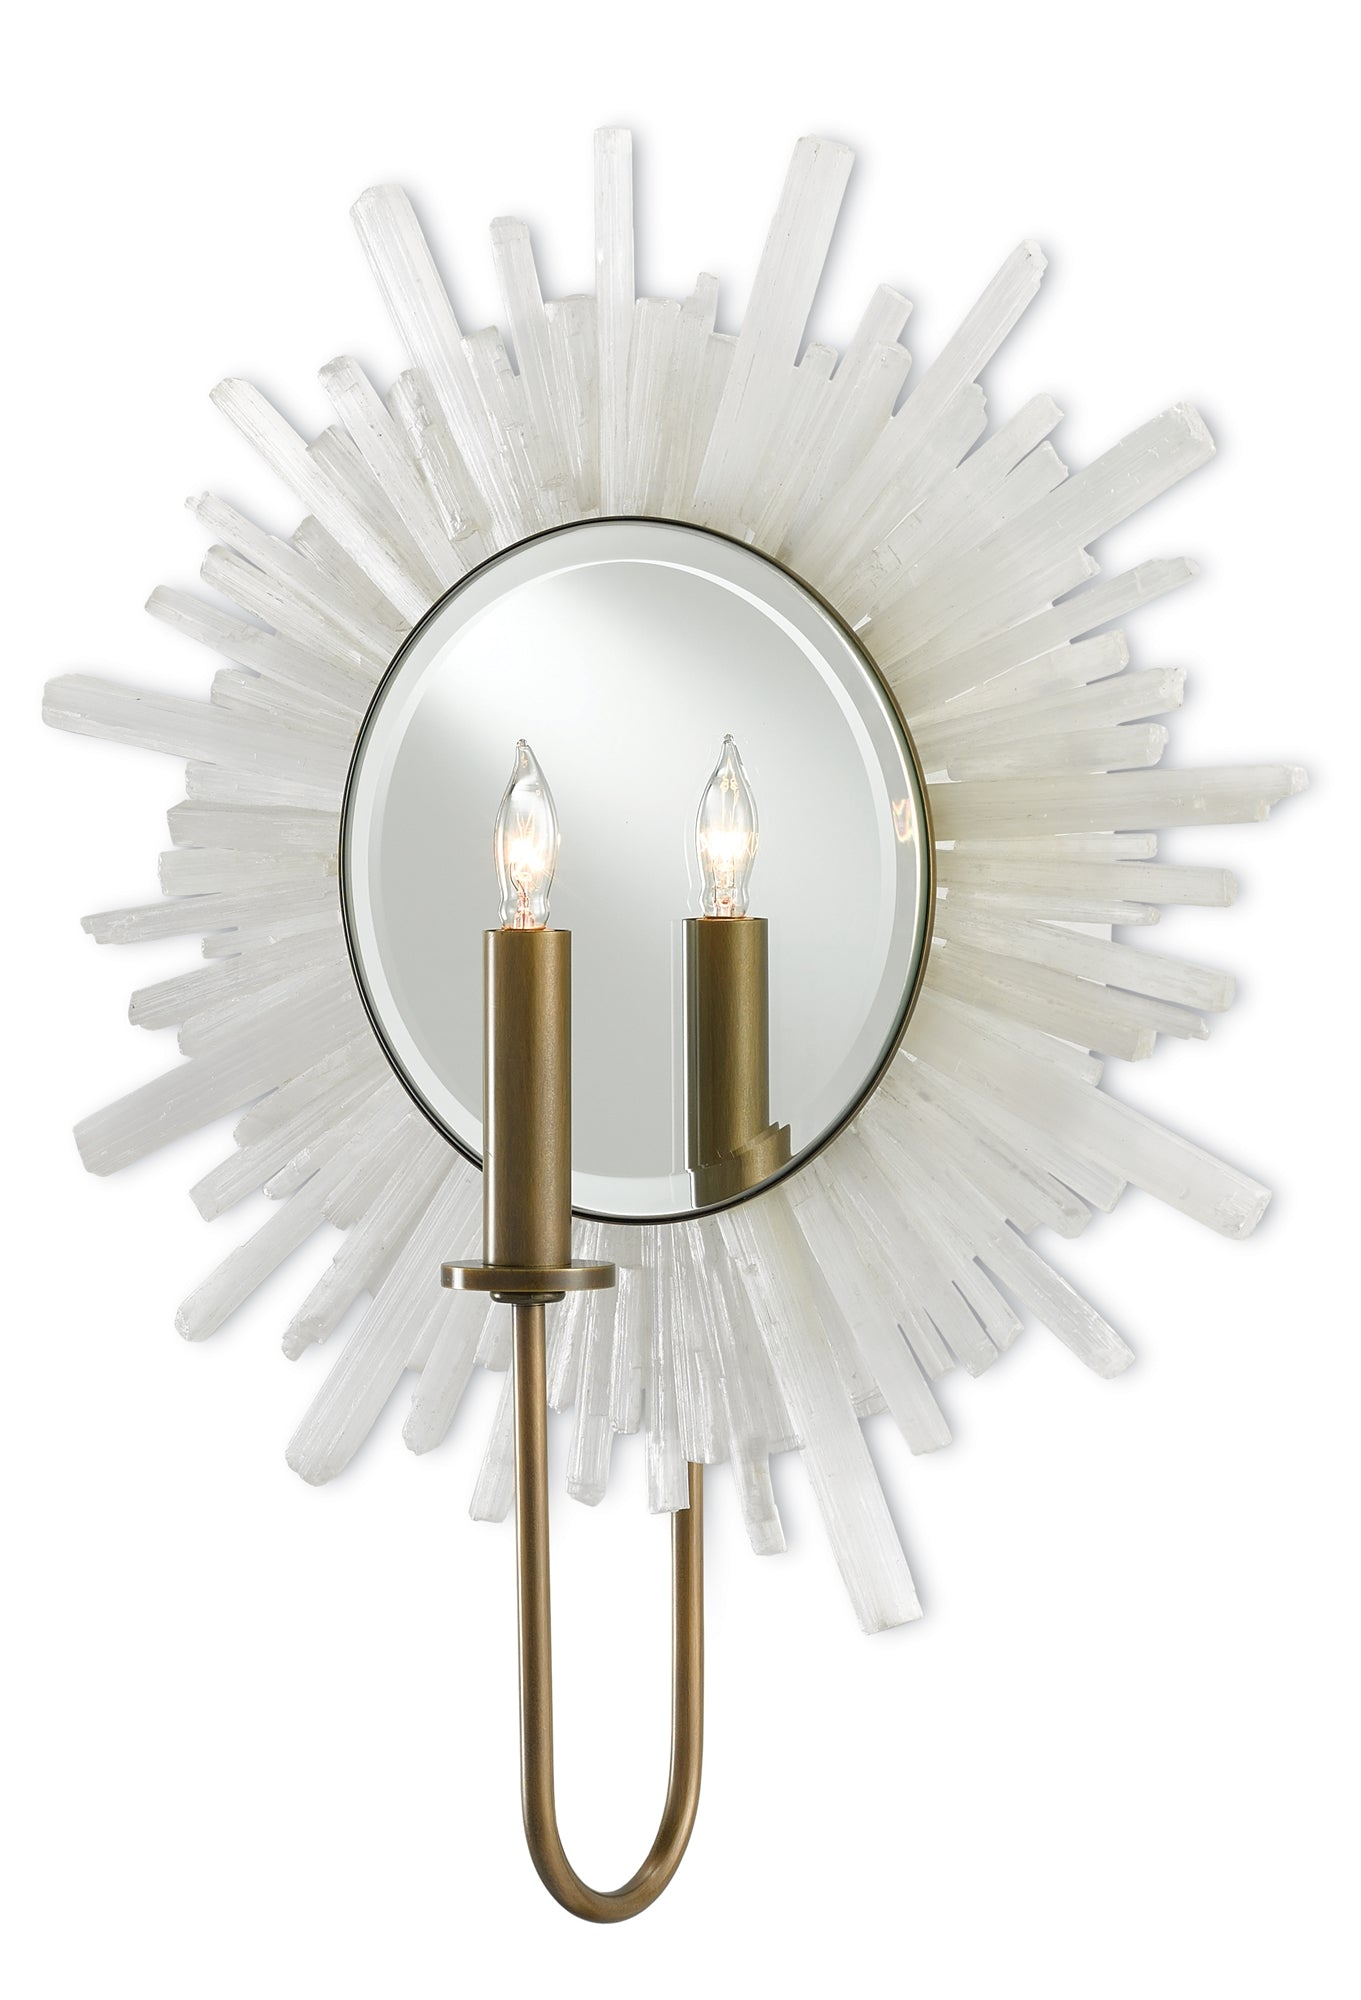 Halo Wall Sconce design by Currey & Company